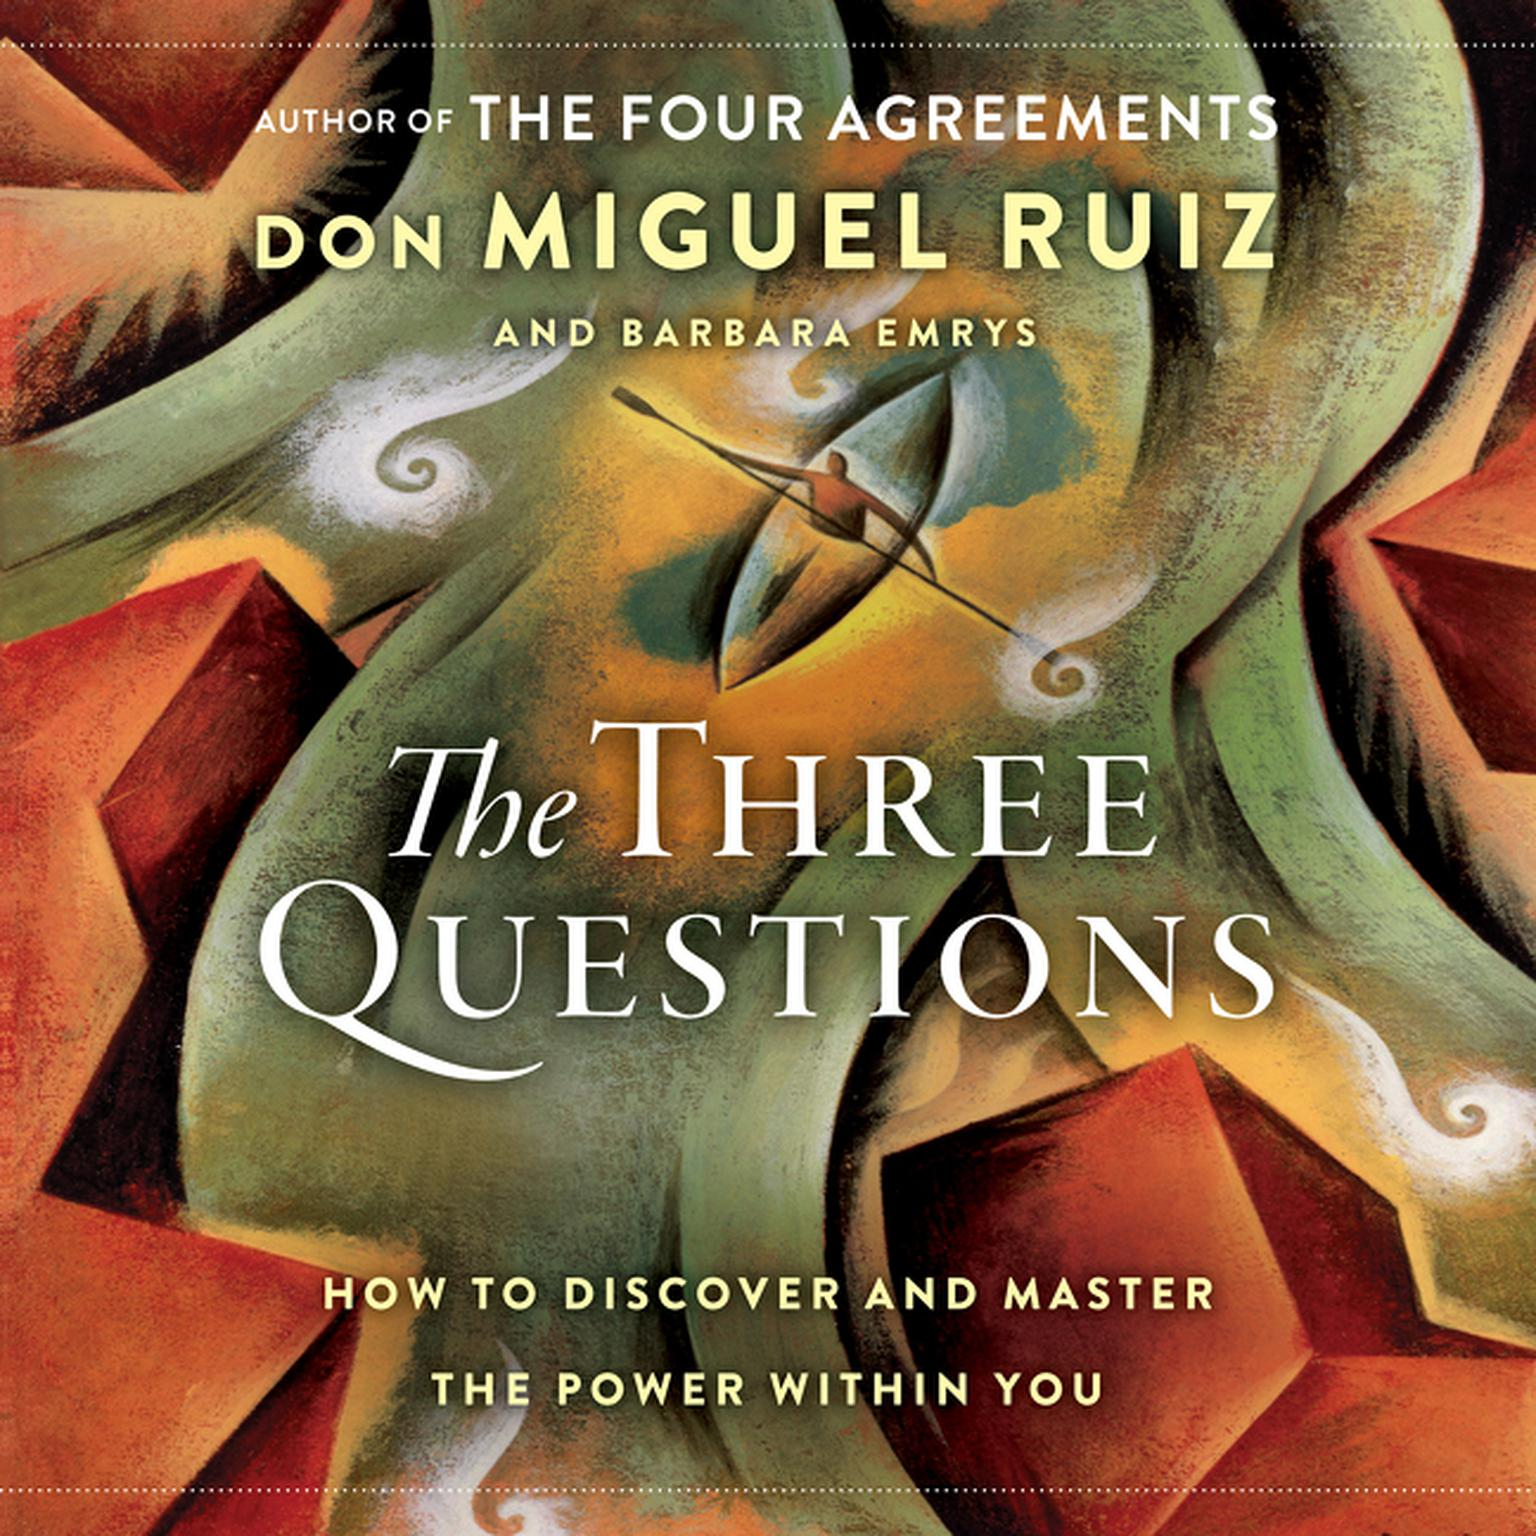 Four Agreements Book Free Download The Three Questions How To Discover And Master The Power Within You Audiobook